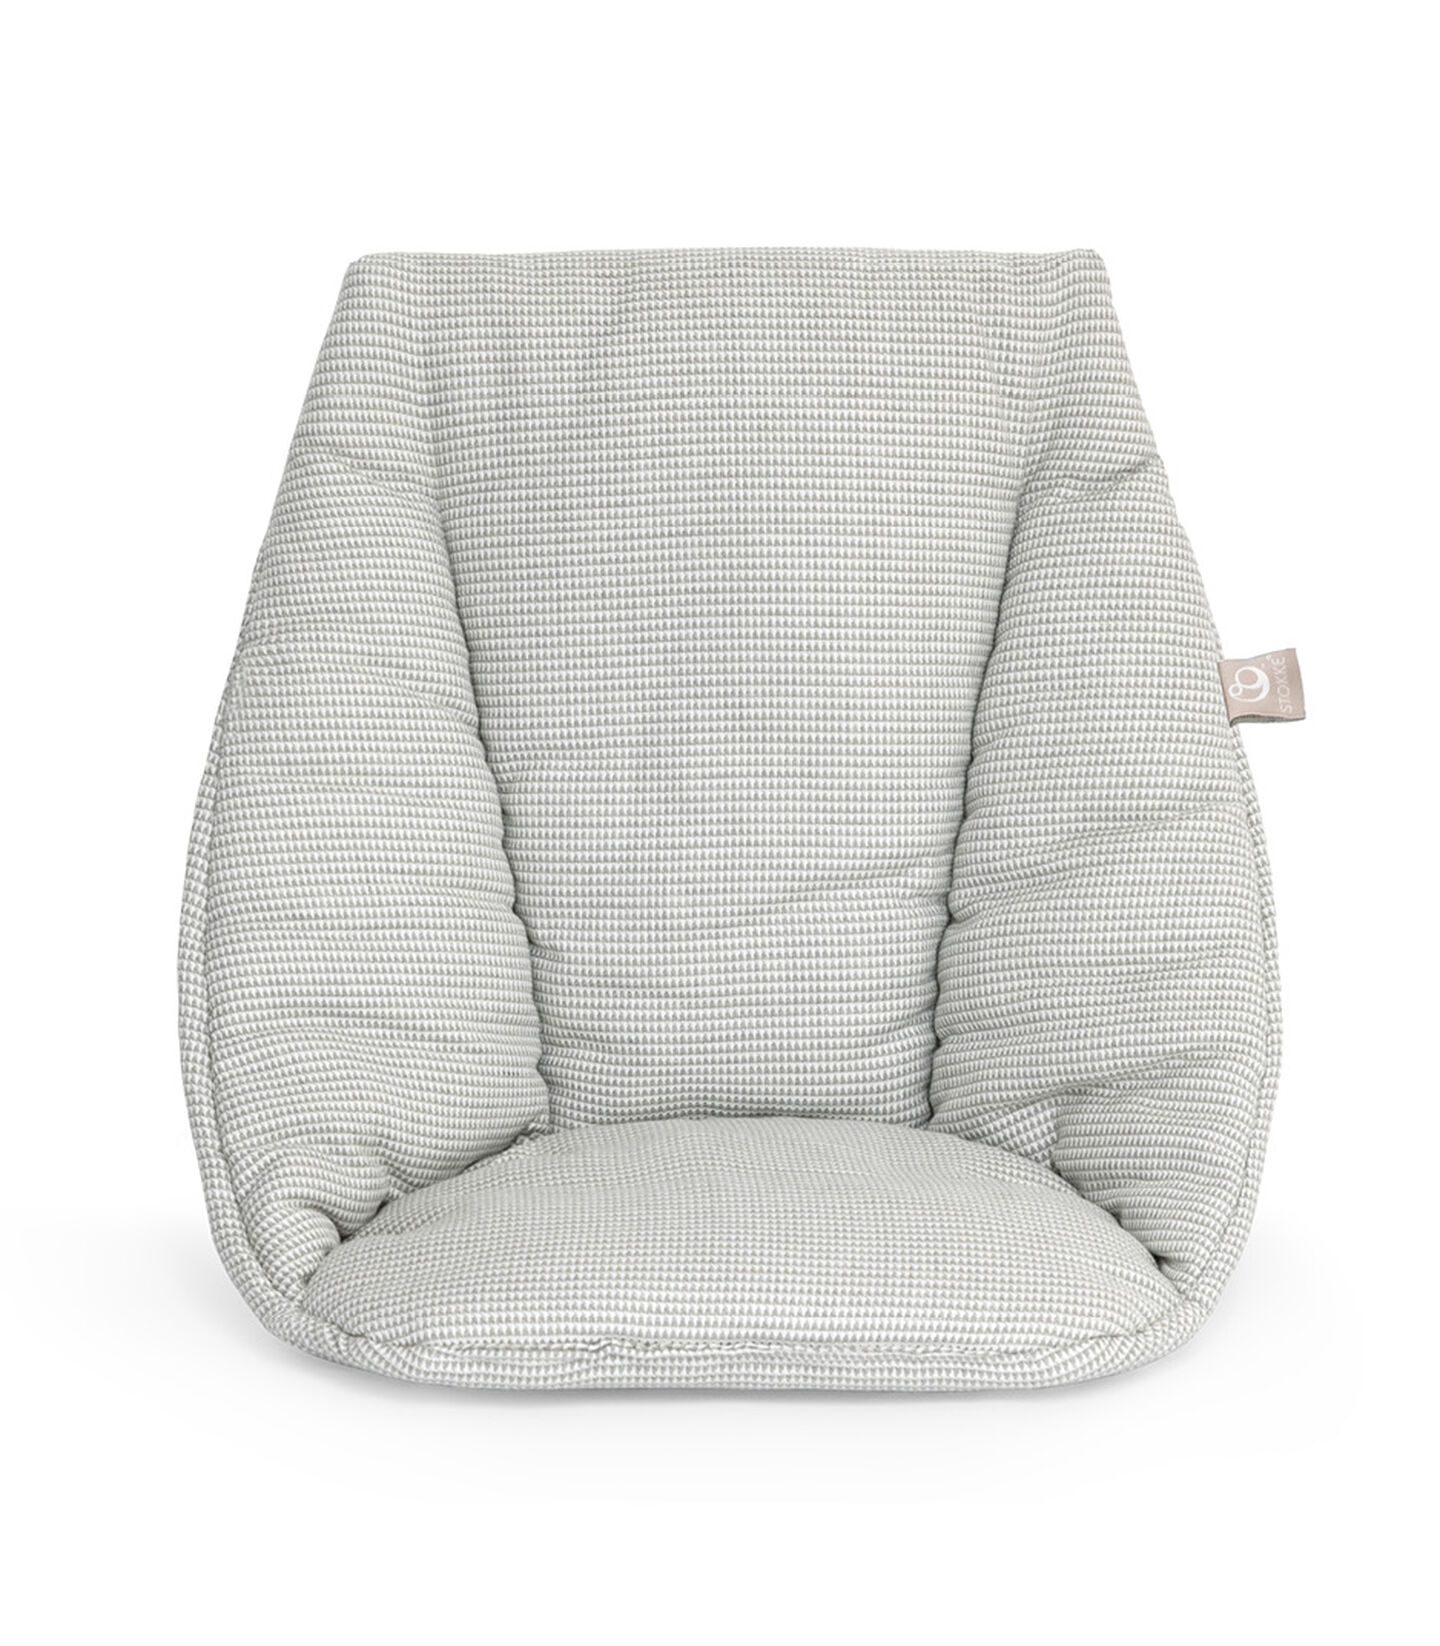 Tripp Trapp® Baby Kussen Nordic Grey, Nordic Grey, mainview view 2